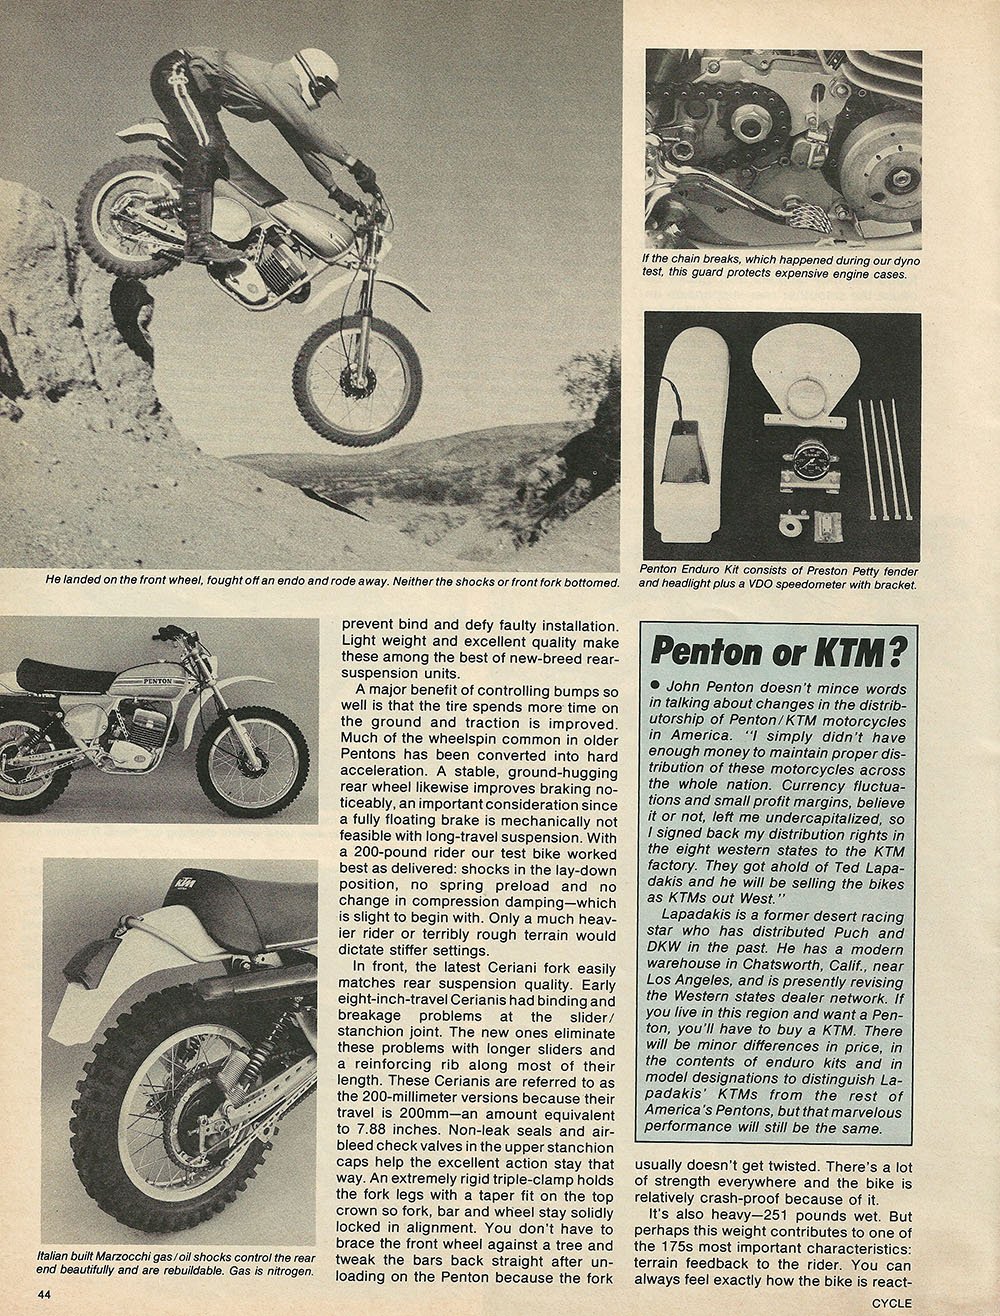 1976 Penton 175 Enduro off road test 5.JPG